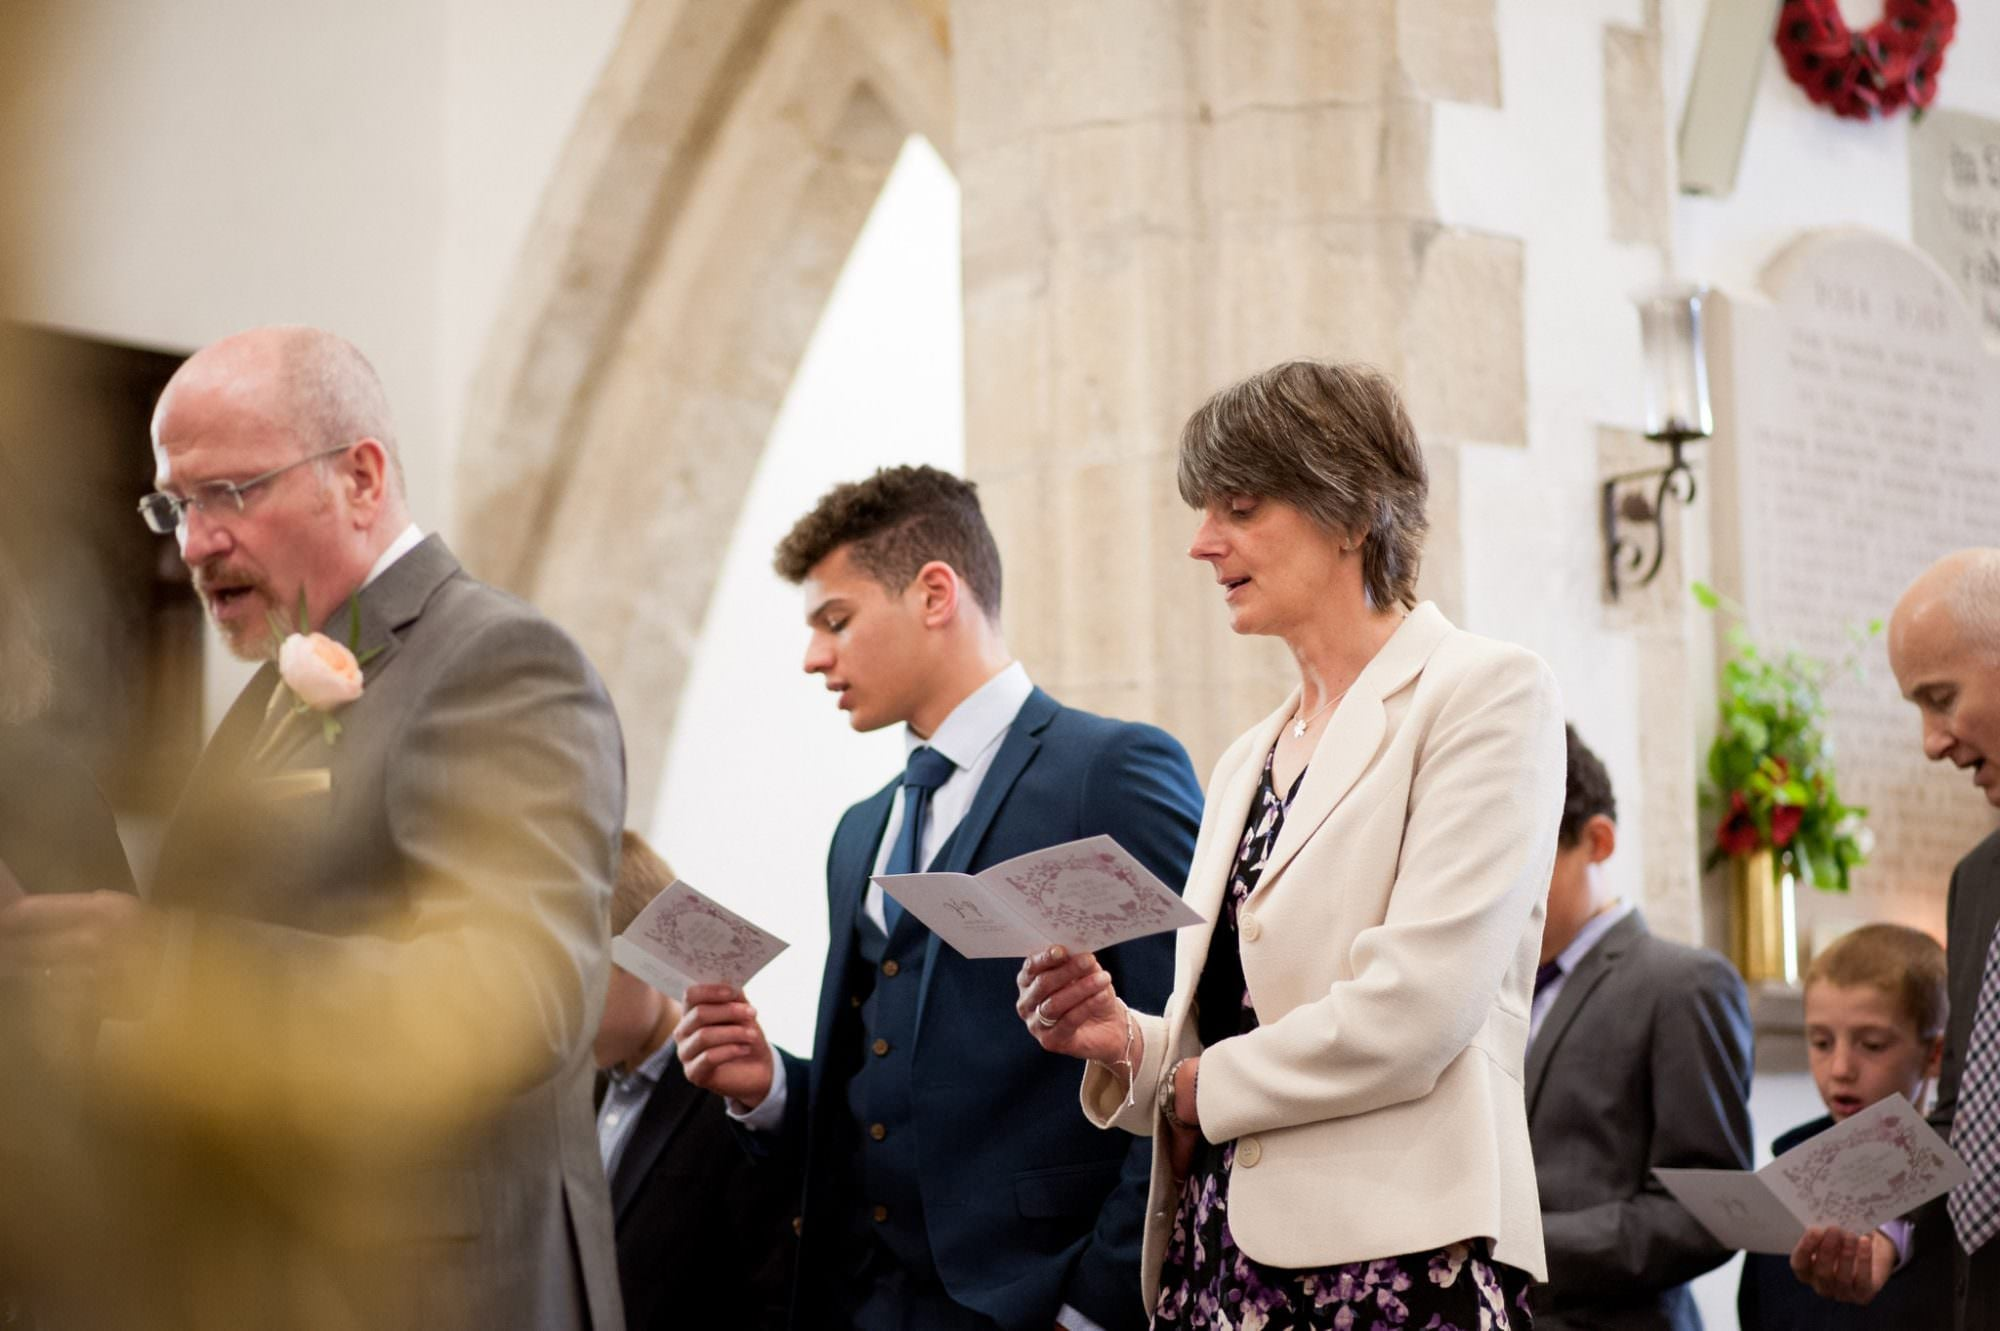 Wedding hymn at Sopley Church